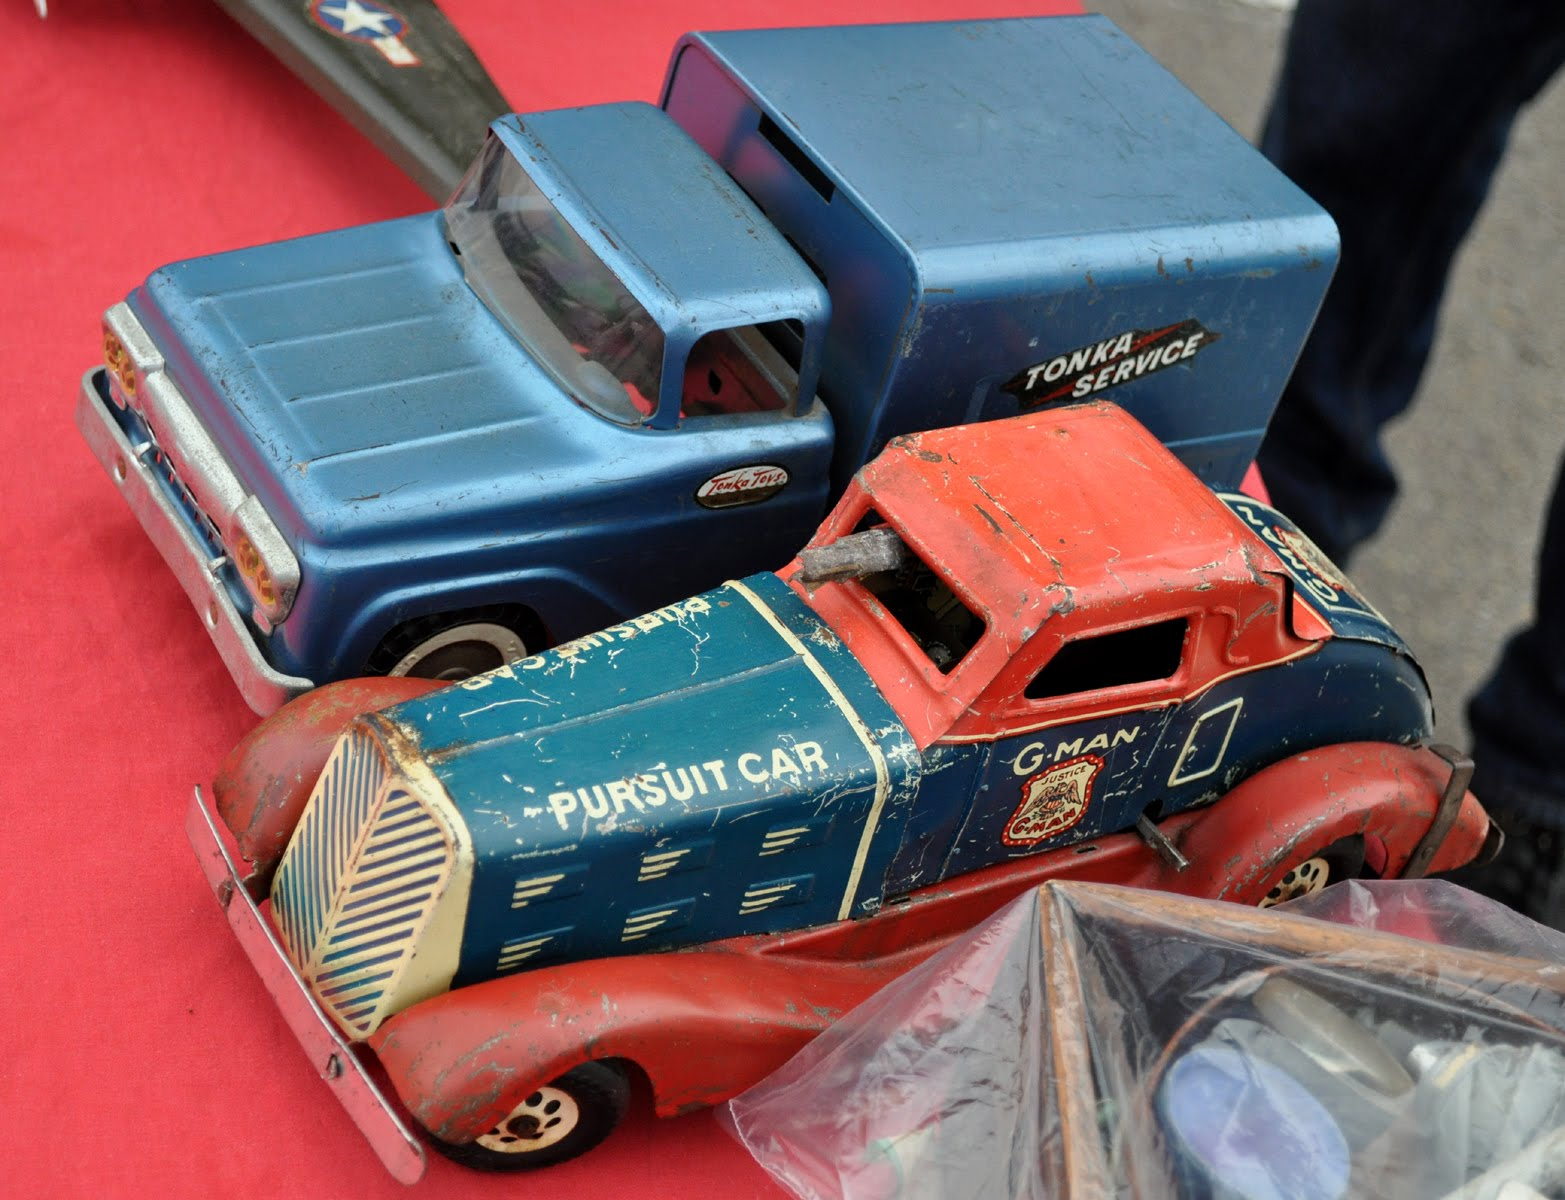 Cool Toy Cars : Just a car guy cool toy cars at the swapmeet